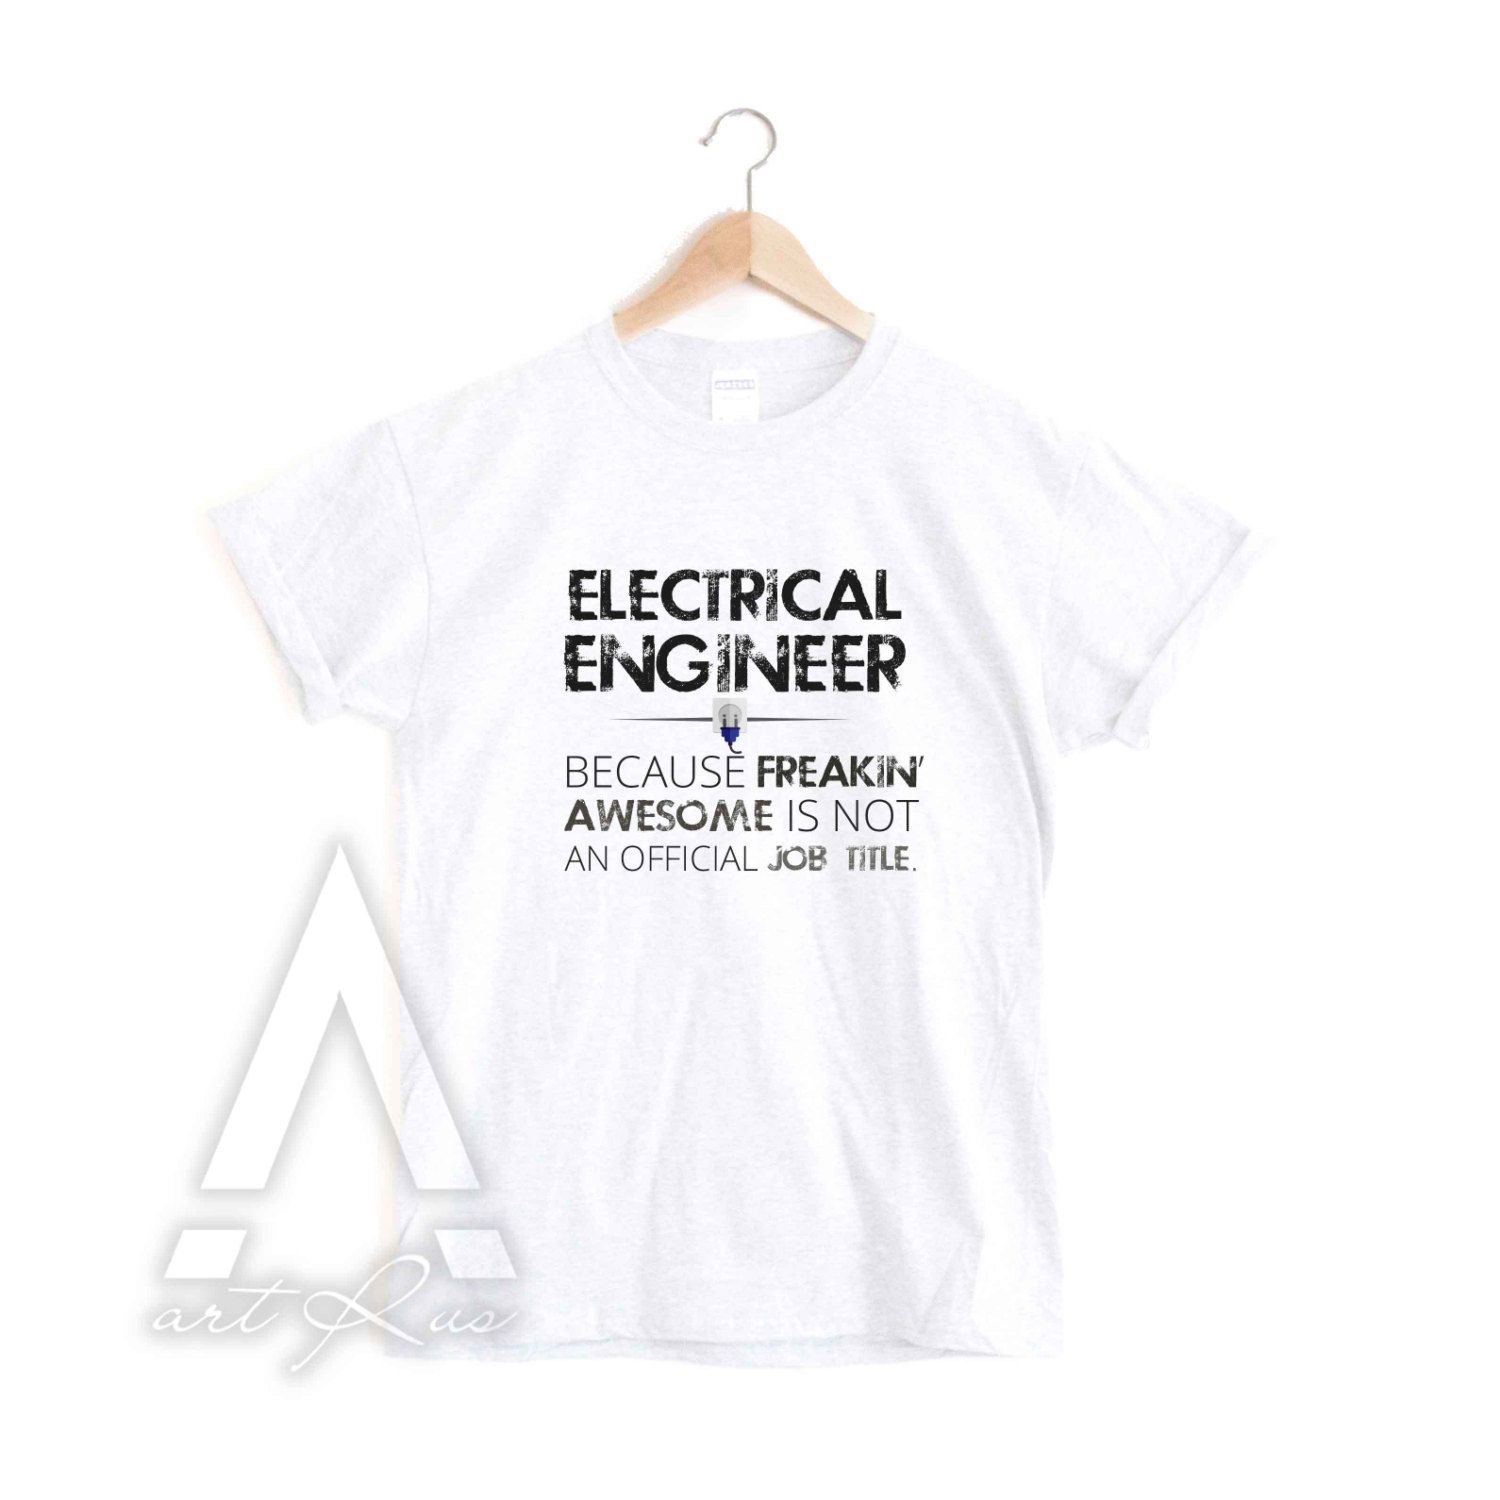 Birthday Gifts For Electrical Engineers, Engineer Gifts, T Shirts, Holiday Gifts,